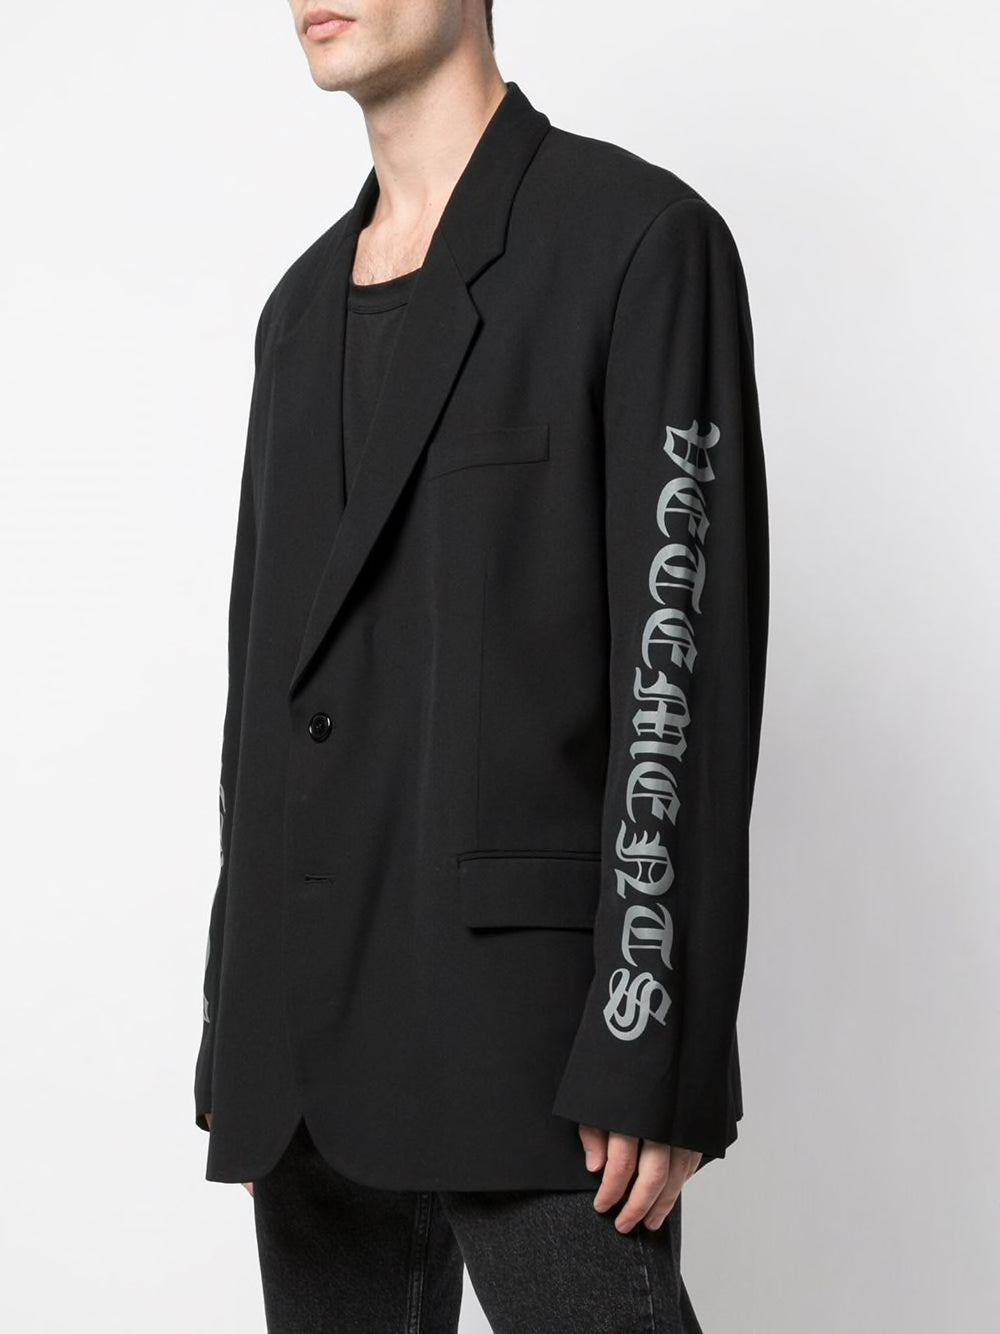 VETEMENTS MEN GOTHIC LOGO TAILORED JACKET